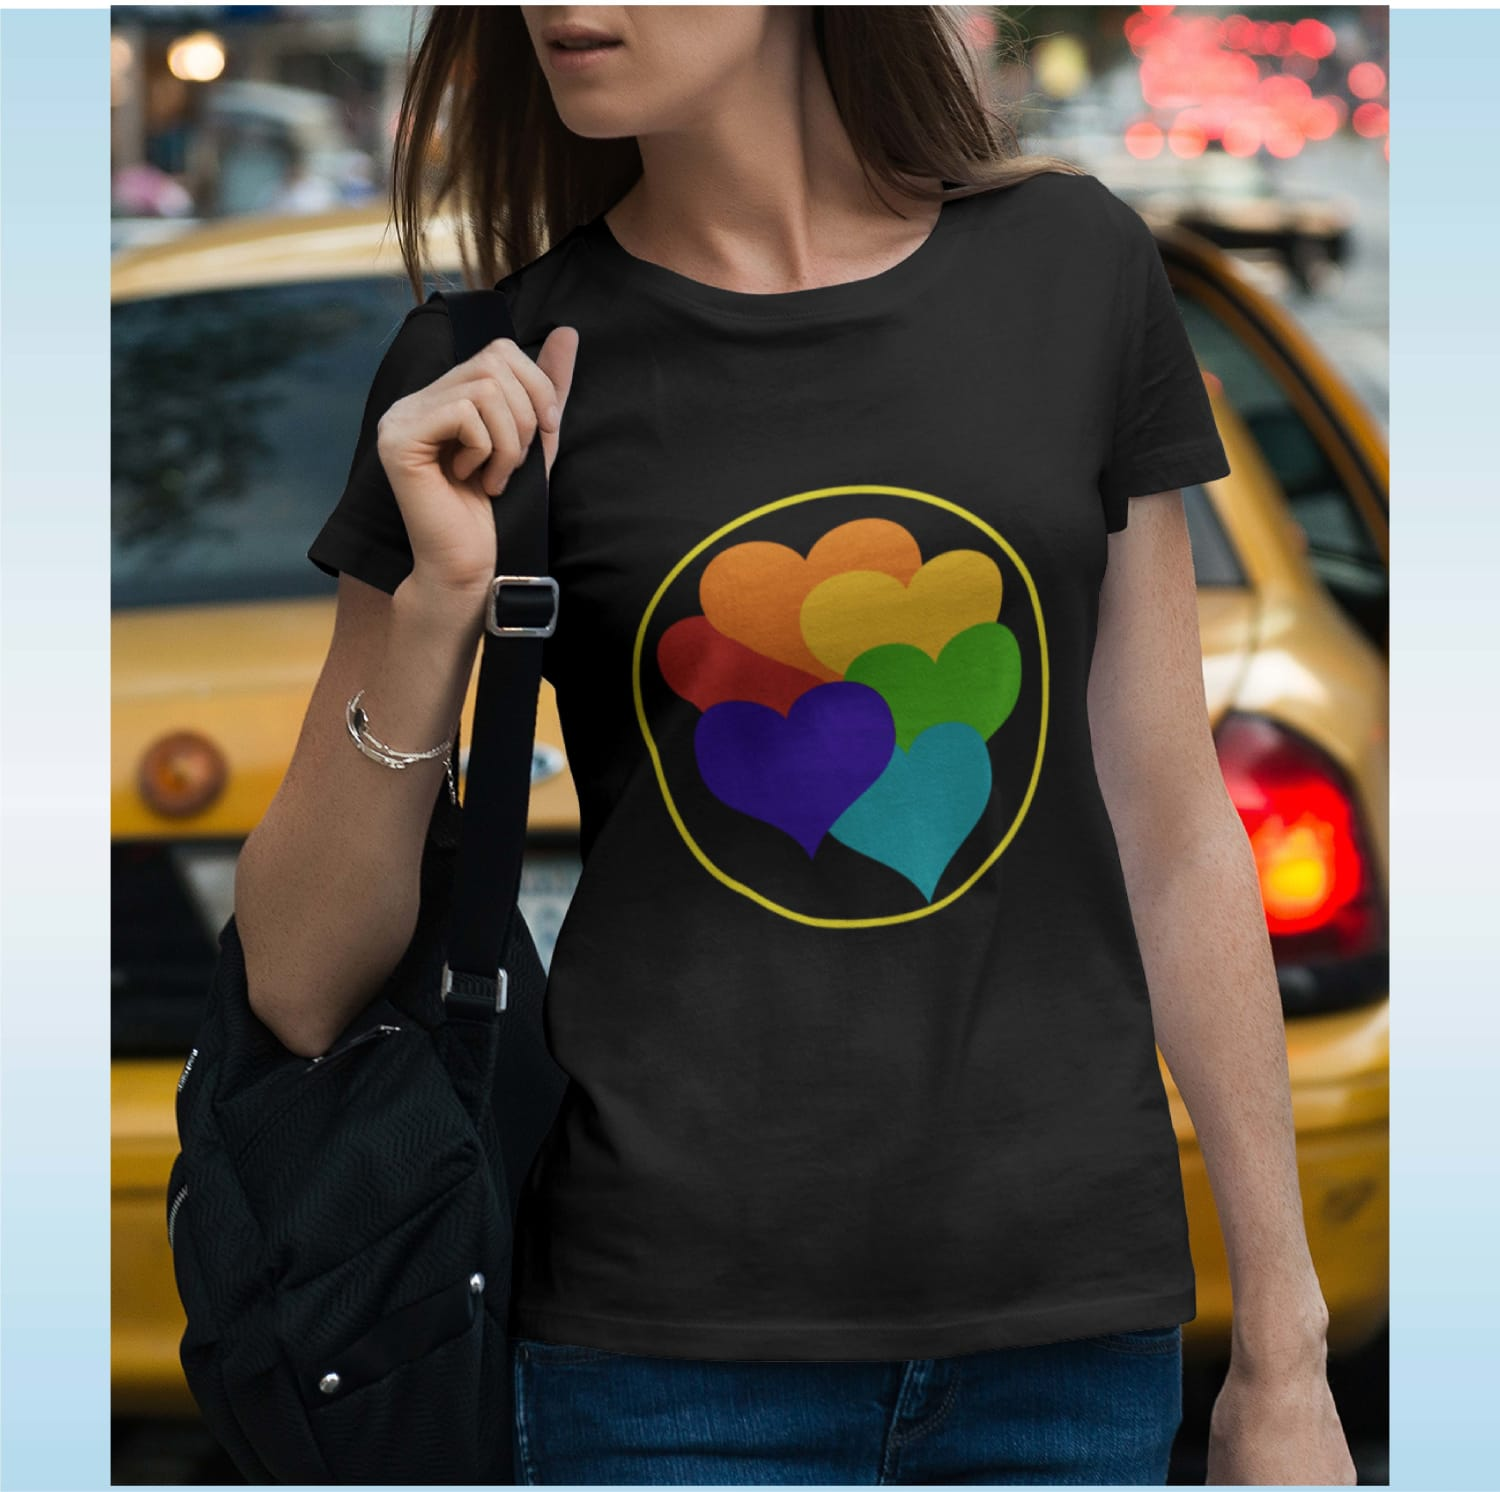 BEAUTIFUL HEARTS DESIGN ON T-SHIRT